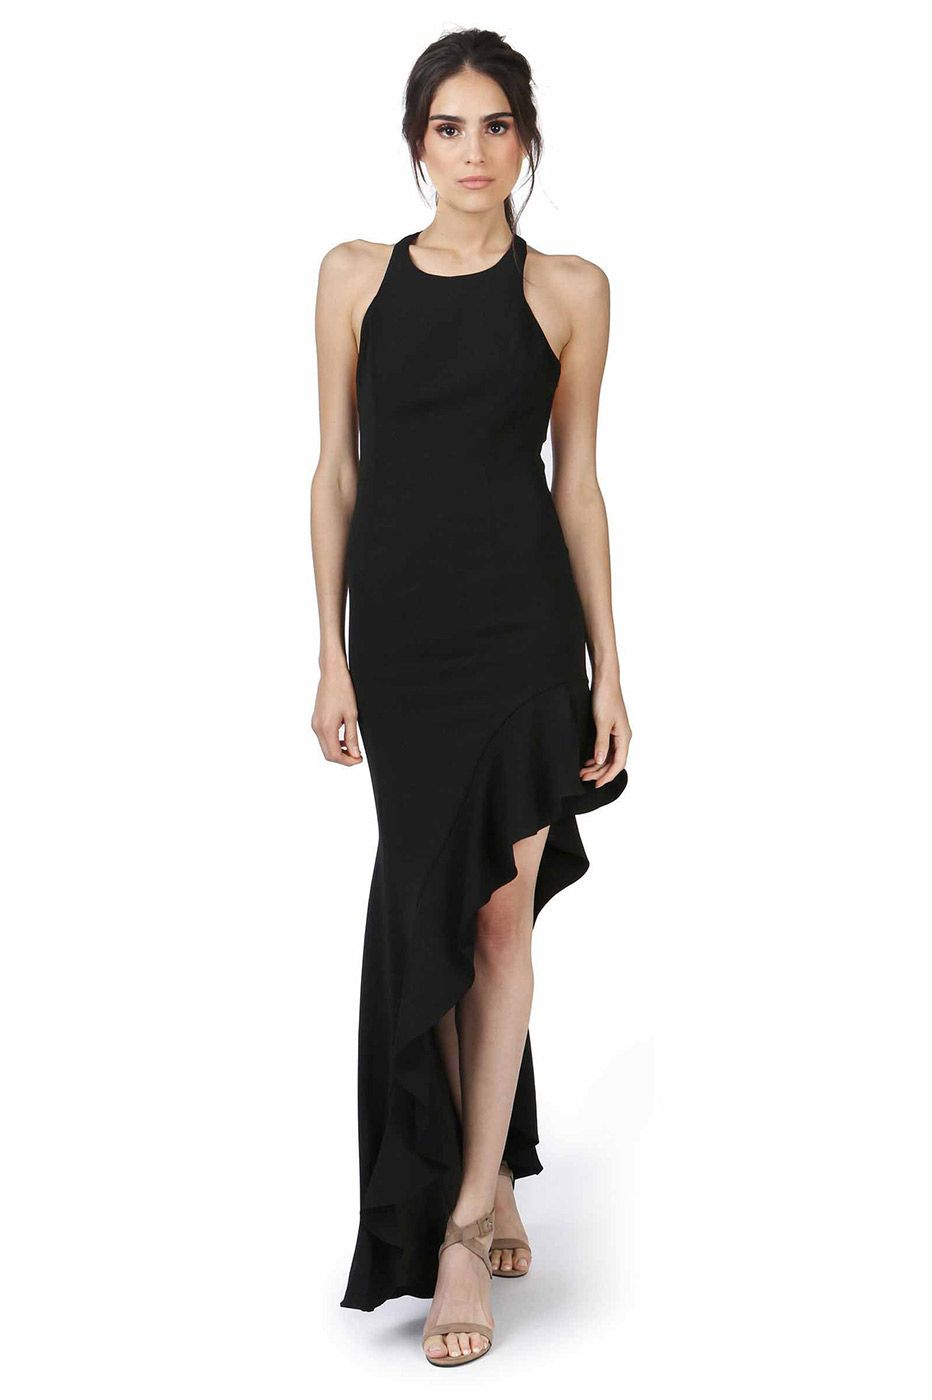 81c9a8ff2a BELL BLACK MAXI was  524 now  157 RACER FRONT HIGH SLIT GOWN WITH  ASYMMETRICAL RUFFLE HEM IN OUR SIGNATURE CREPE FABRIC. LOW T BACK WITH  HIDDEN ZIPPER.